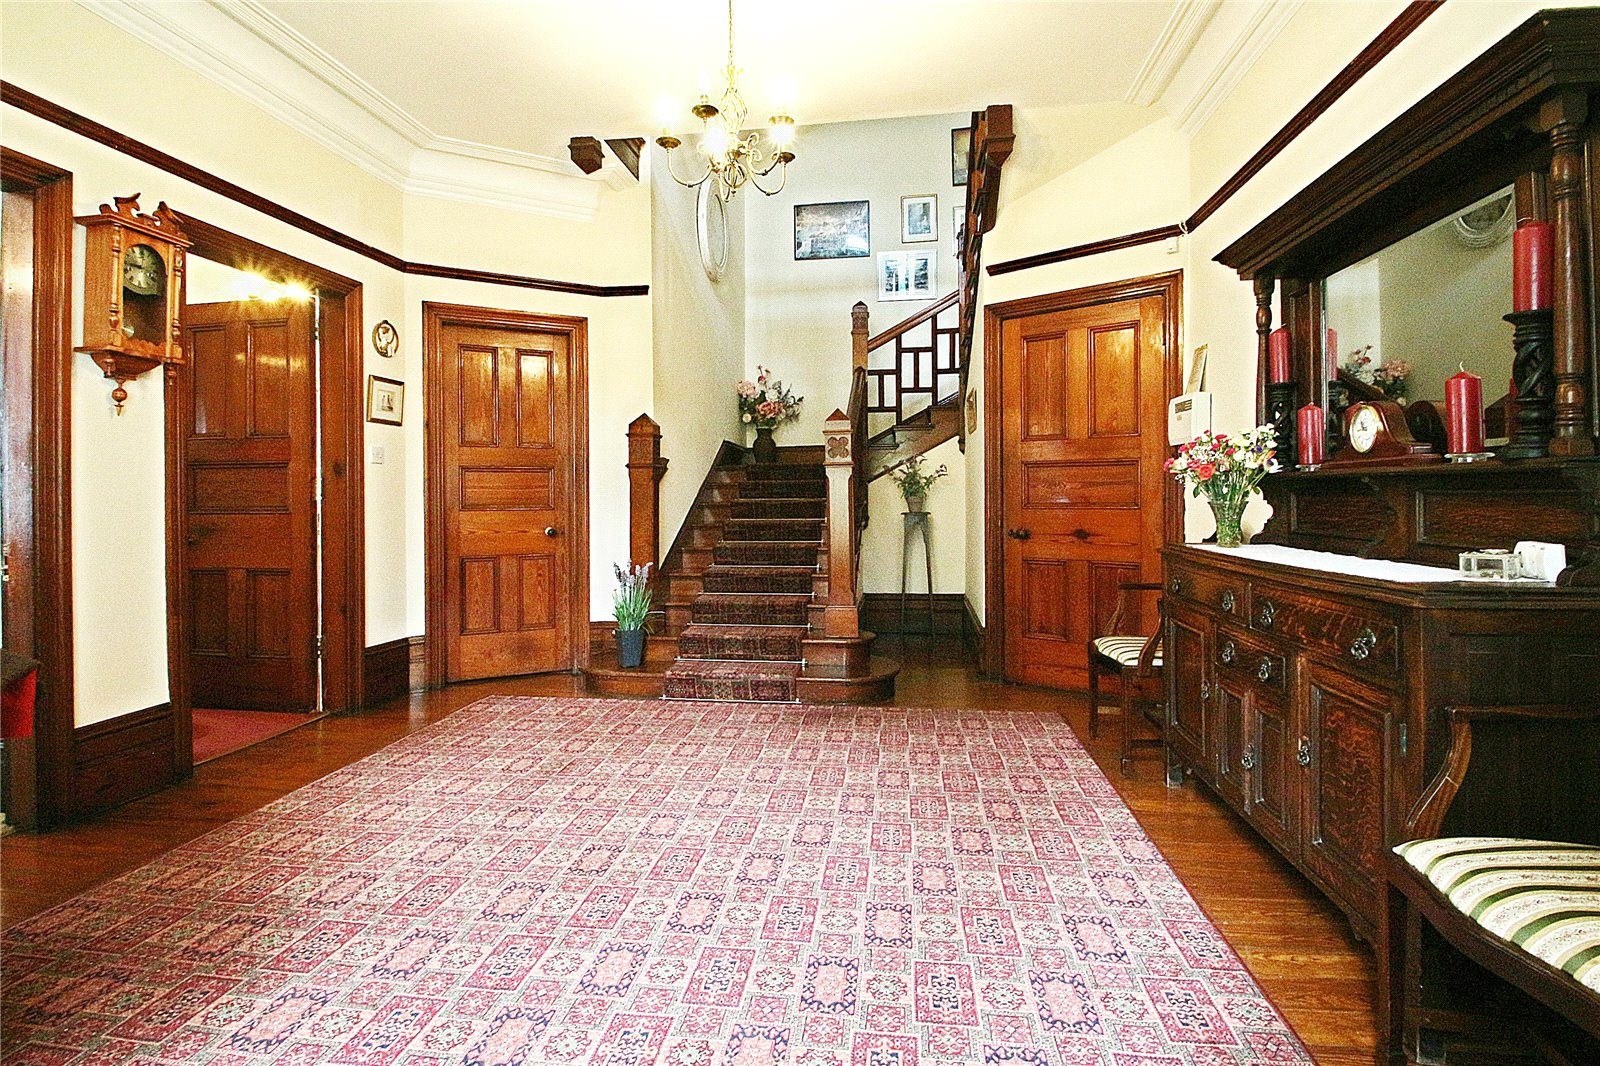 7 bed house for sale in Richmond Road, Stockton-on-Tees 2